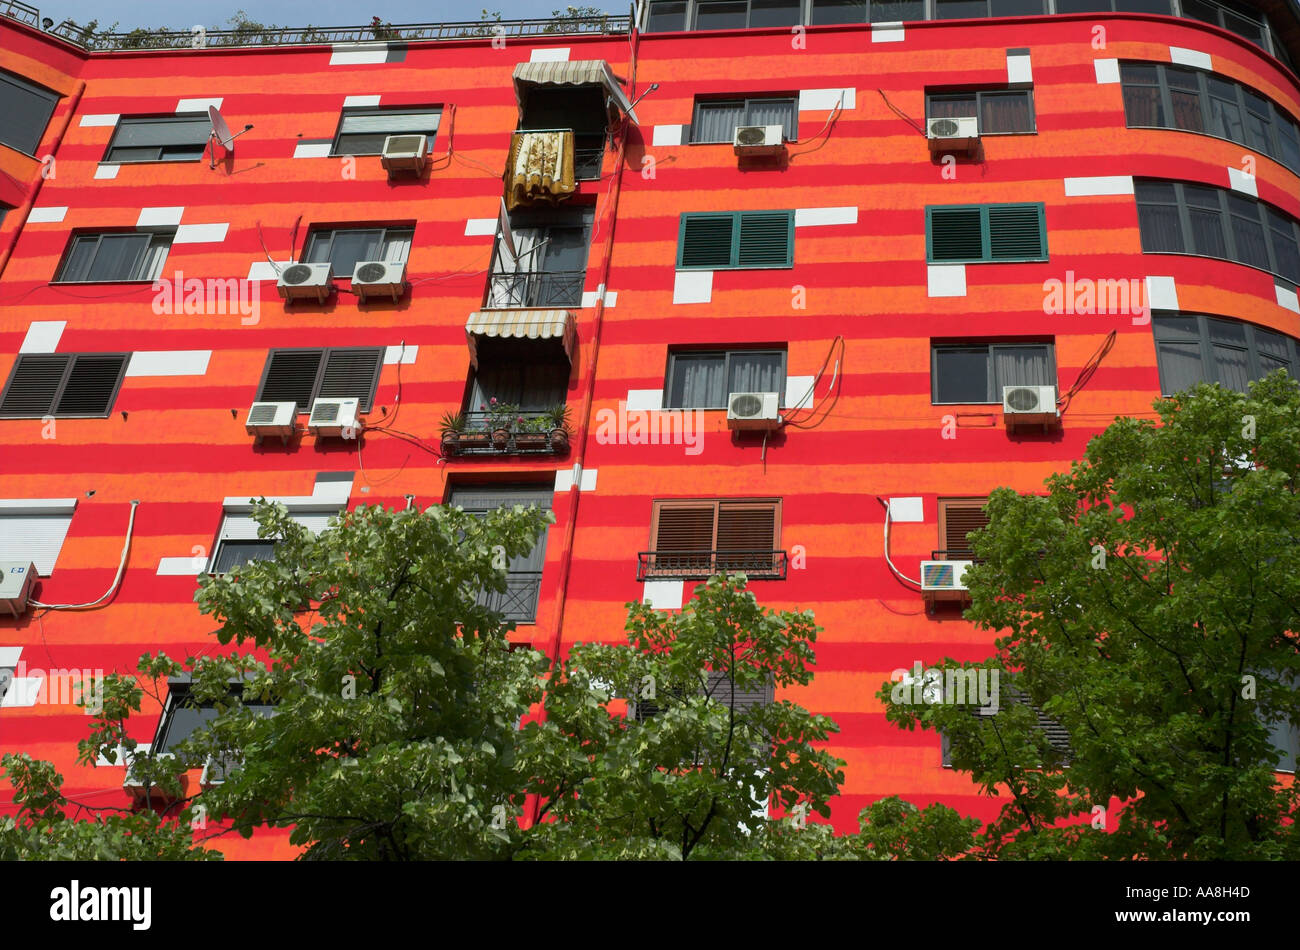 Albania Tirana Downtown Blloku close up of repainted housing buildings in bright red and orange paint - Stock Image